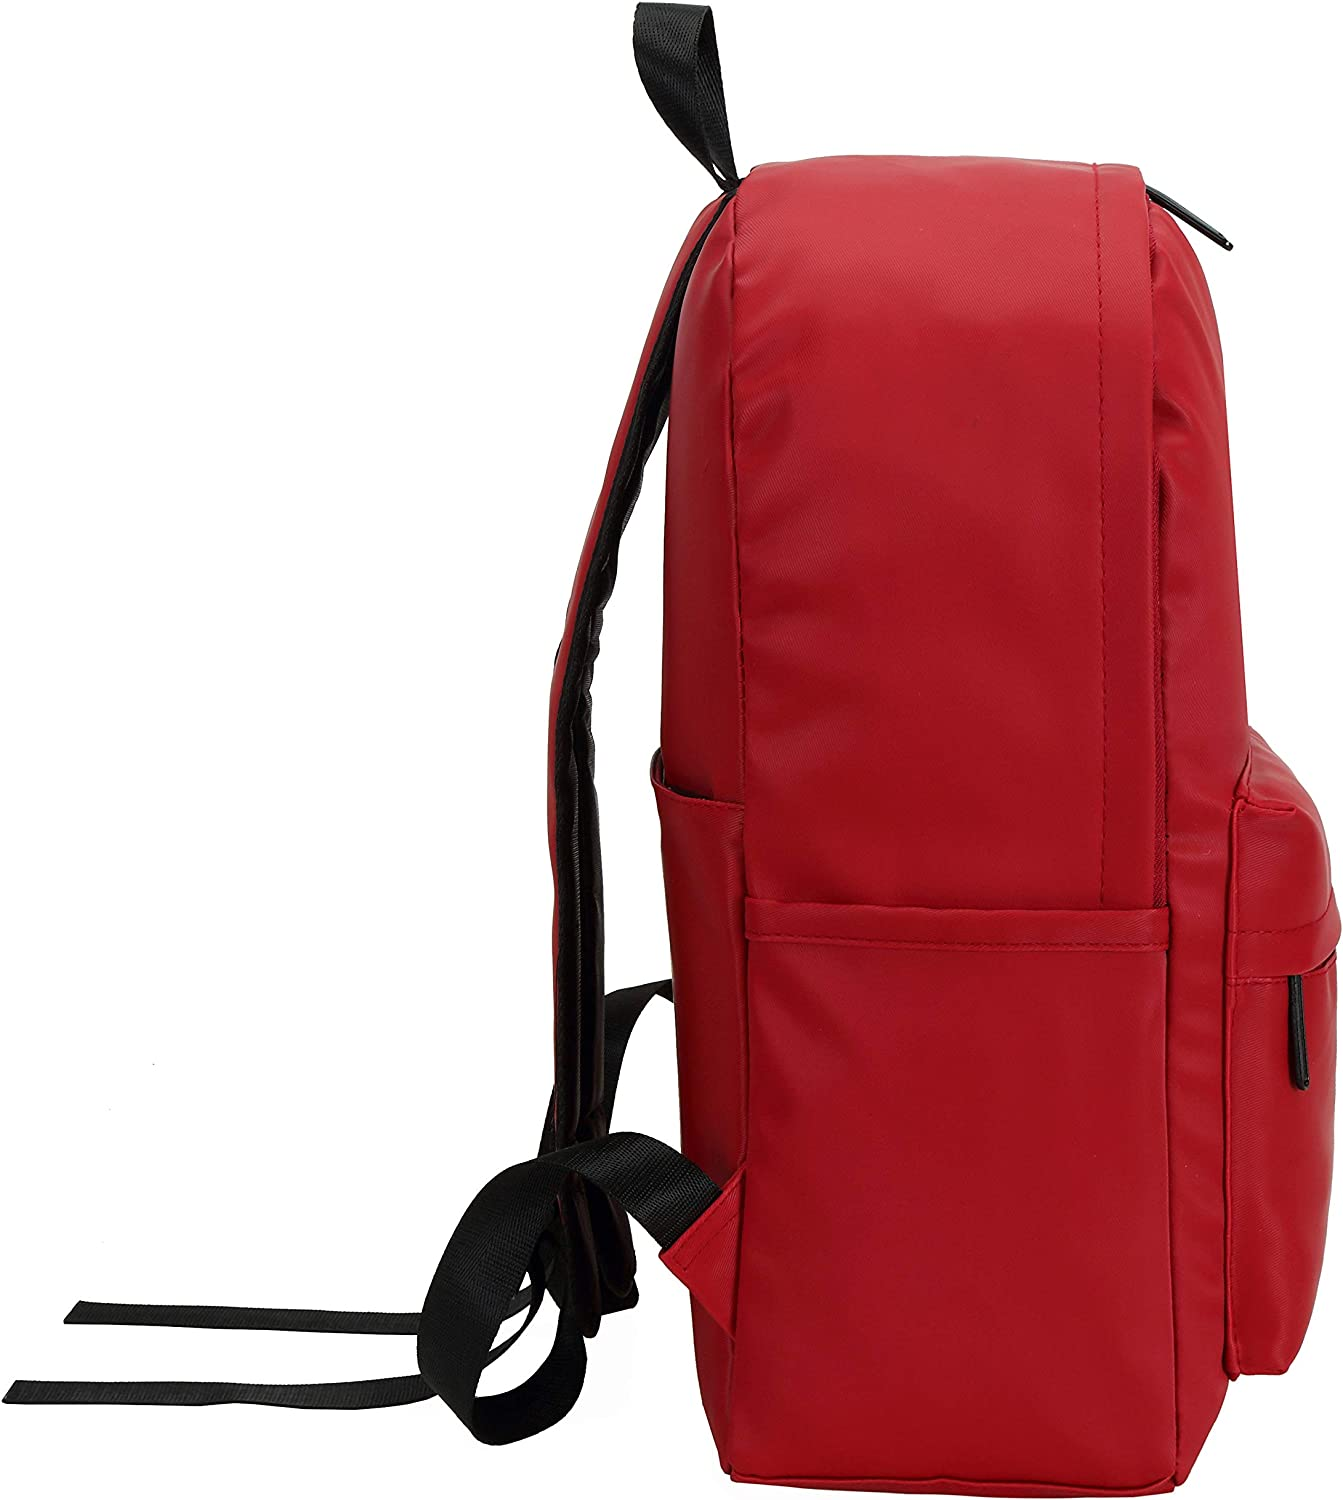 IN.RHAN Backpack for Unisex,Classic Water-resistant Travel School Backpack Casual Daypack